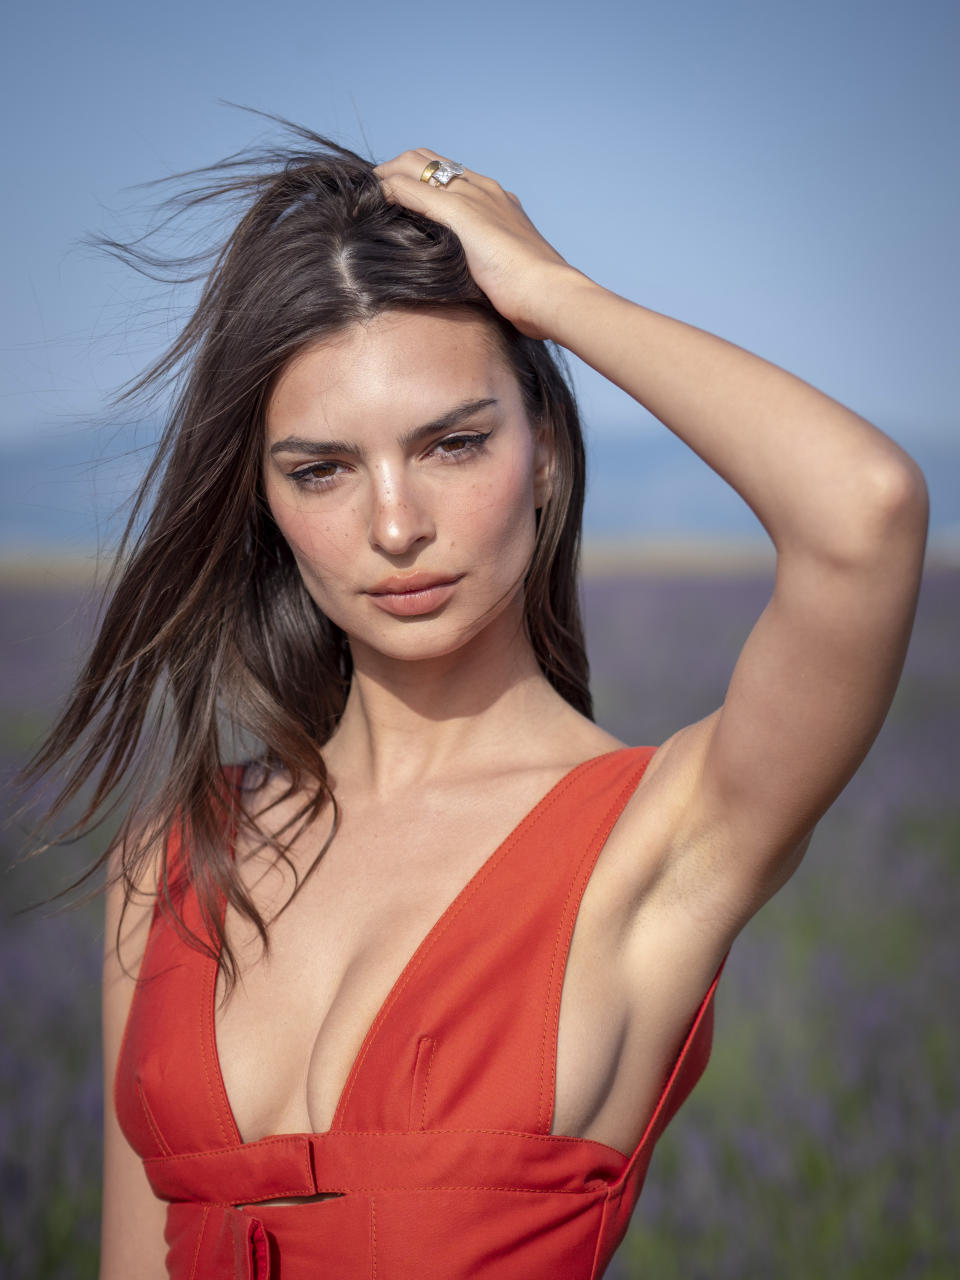 VALENSOLE, FRANCE - JUNE 24: Emily Ratajkowski attends the Jacquemus Spring Summer 2020 show on June 24, 2019 in Valensole, France. (Photo by Arnold Jerocki/Getty Images)